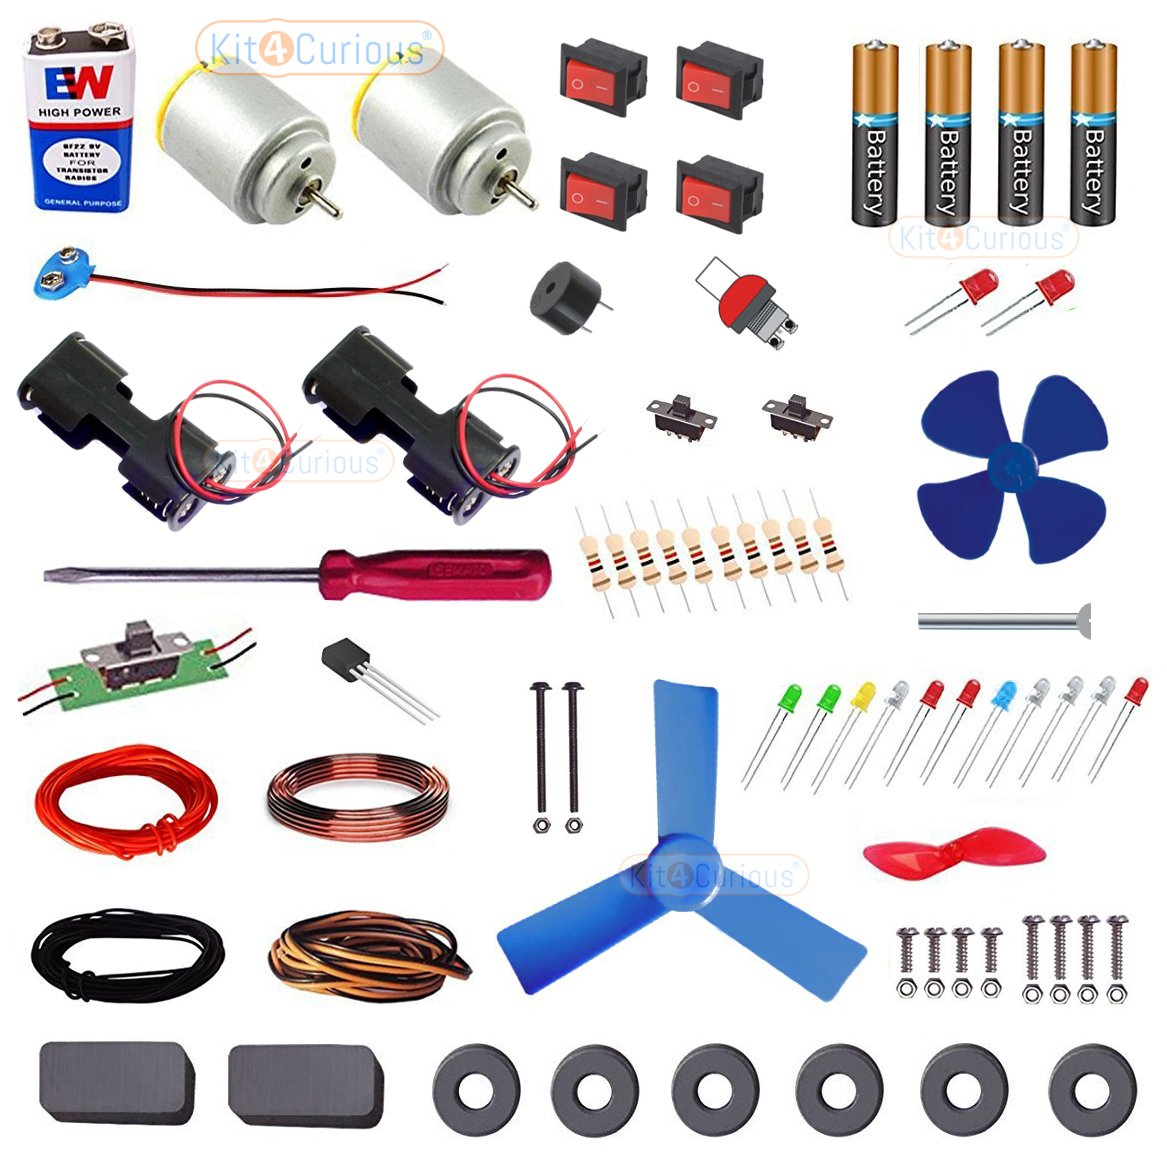 Kit4curious Electro Kit Electronic Diy Components With Guide Amazon Wiring Diagrams For A Ceiling Fan And Light Doityourself Industrial Scientific